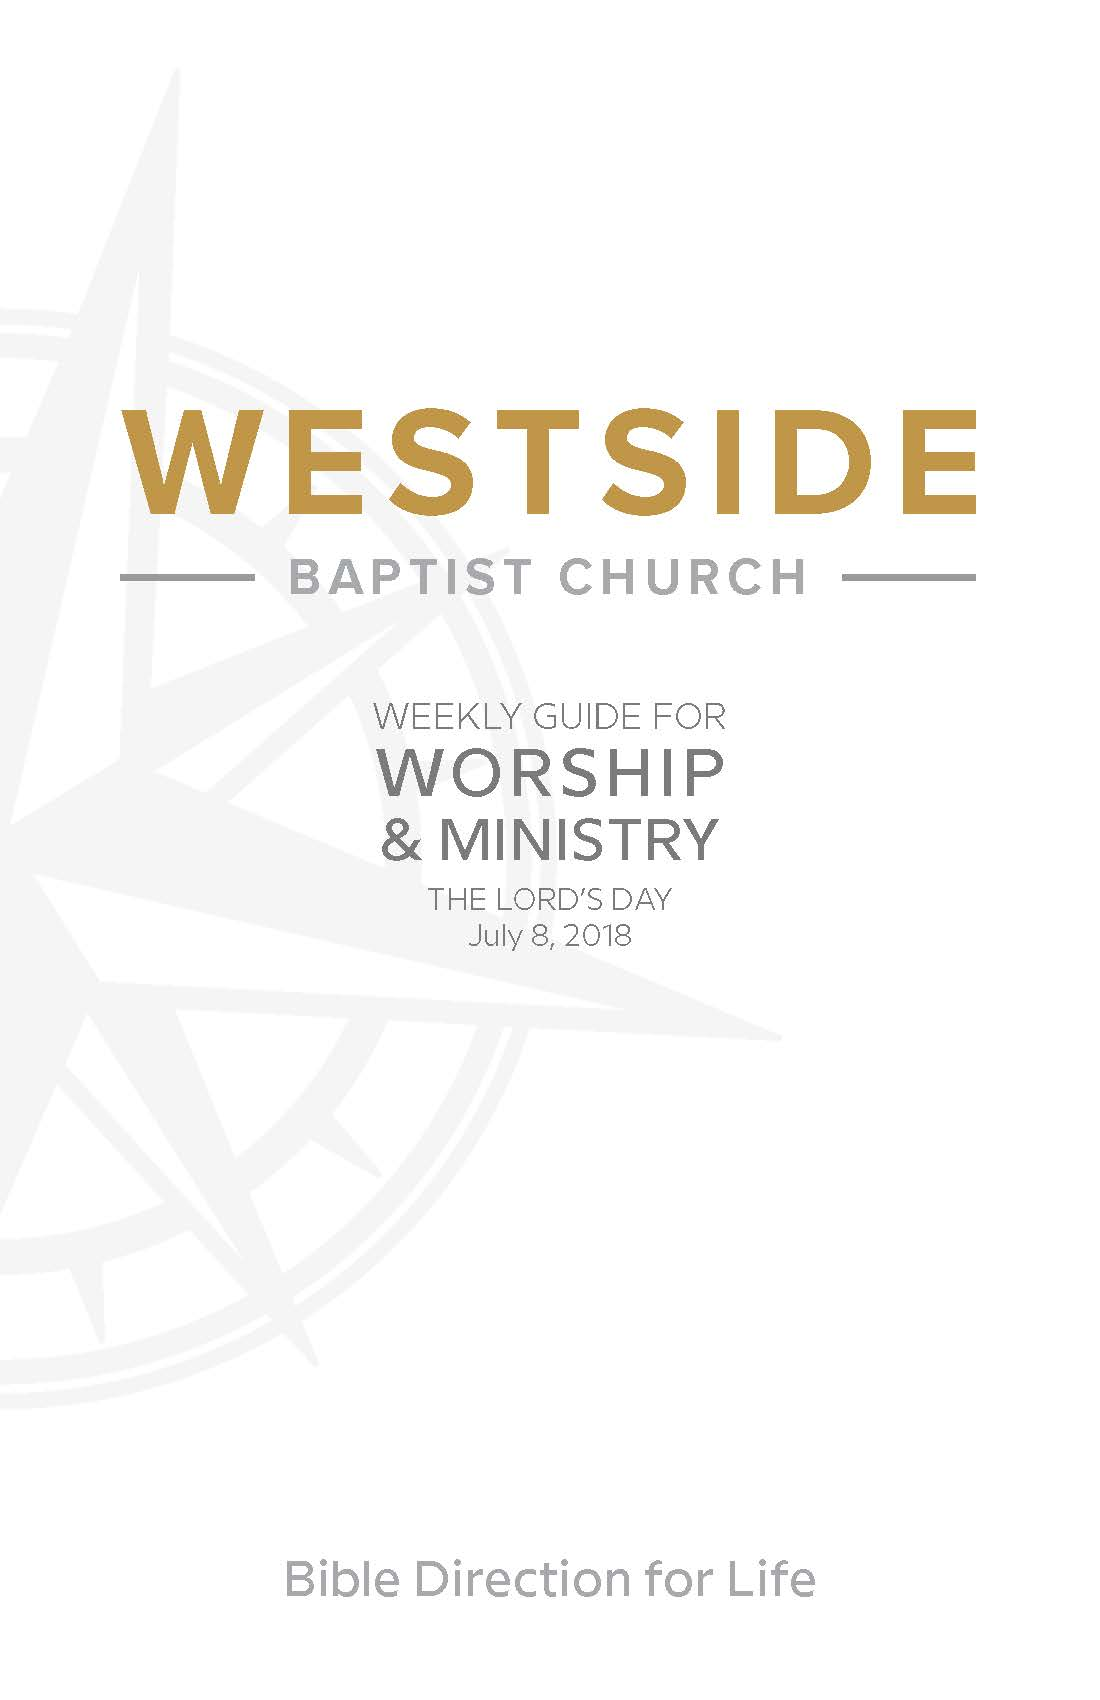 Weekly Guide for Worship and Ministry—July 8